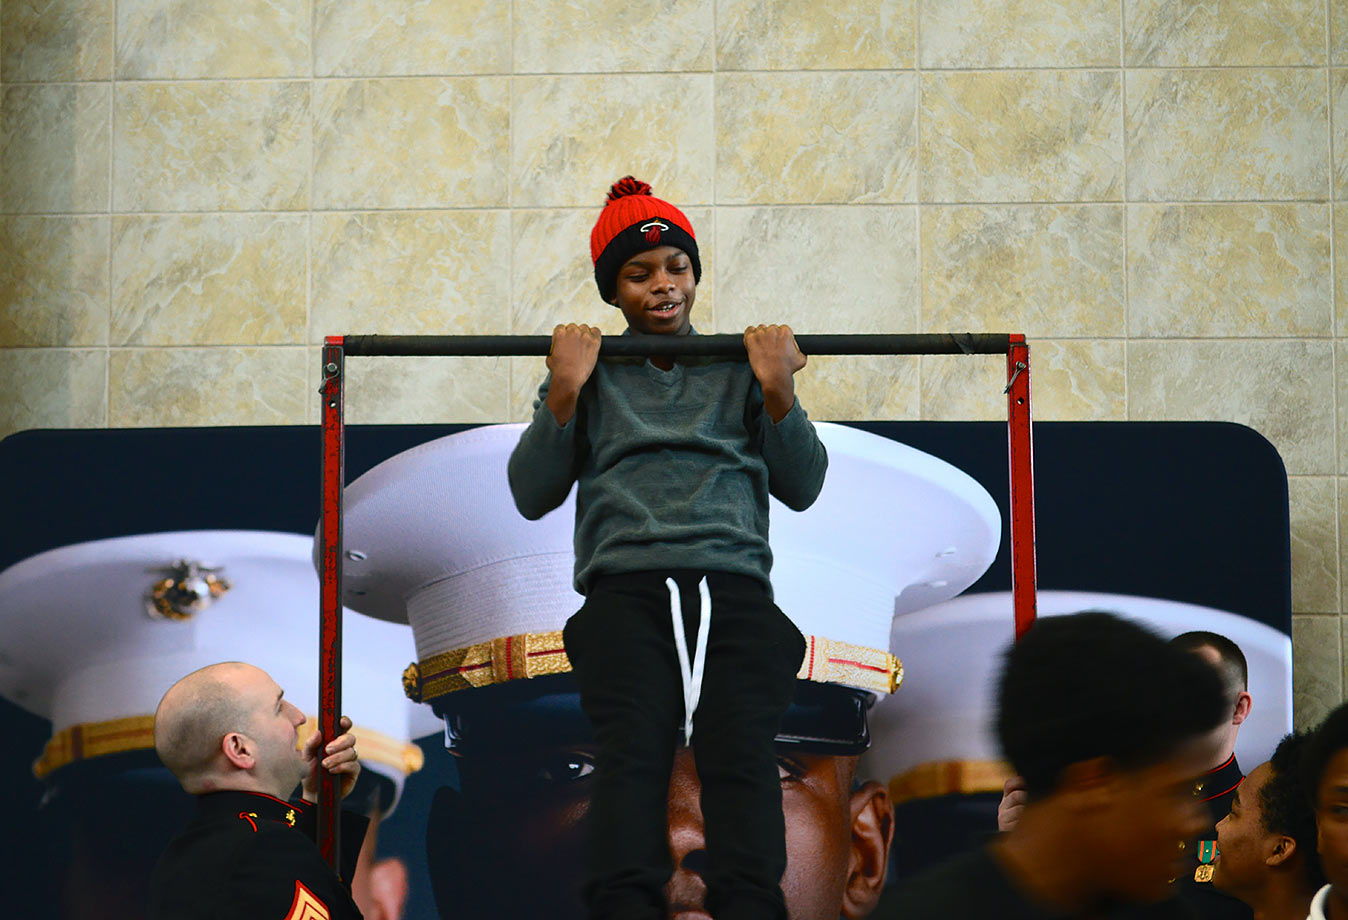 A Harper Woods High student gives it his all in the Marines' pull-up bar challenge.